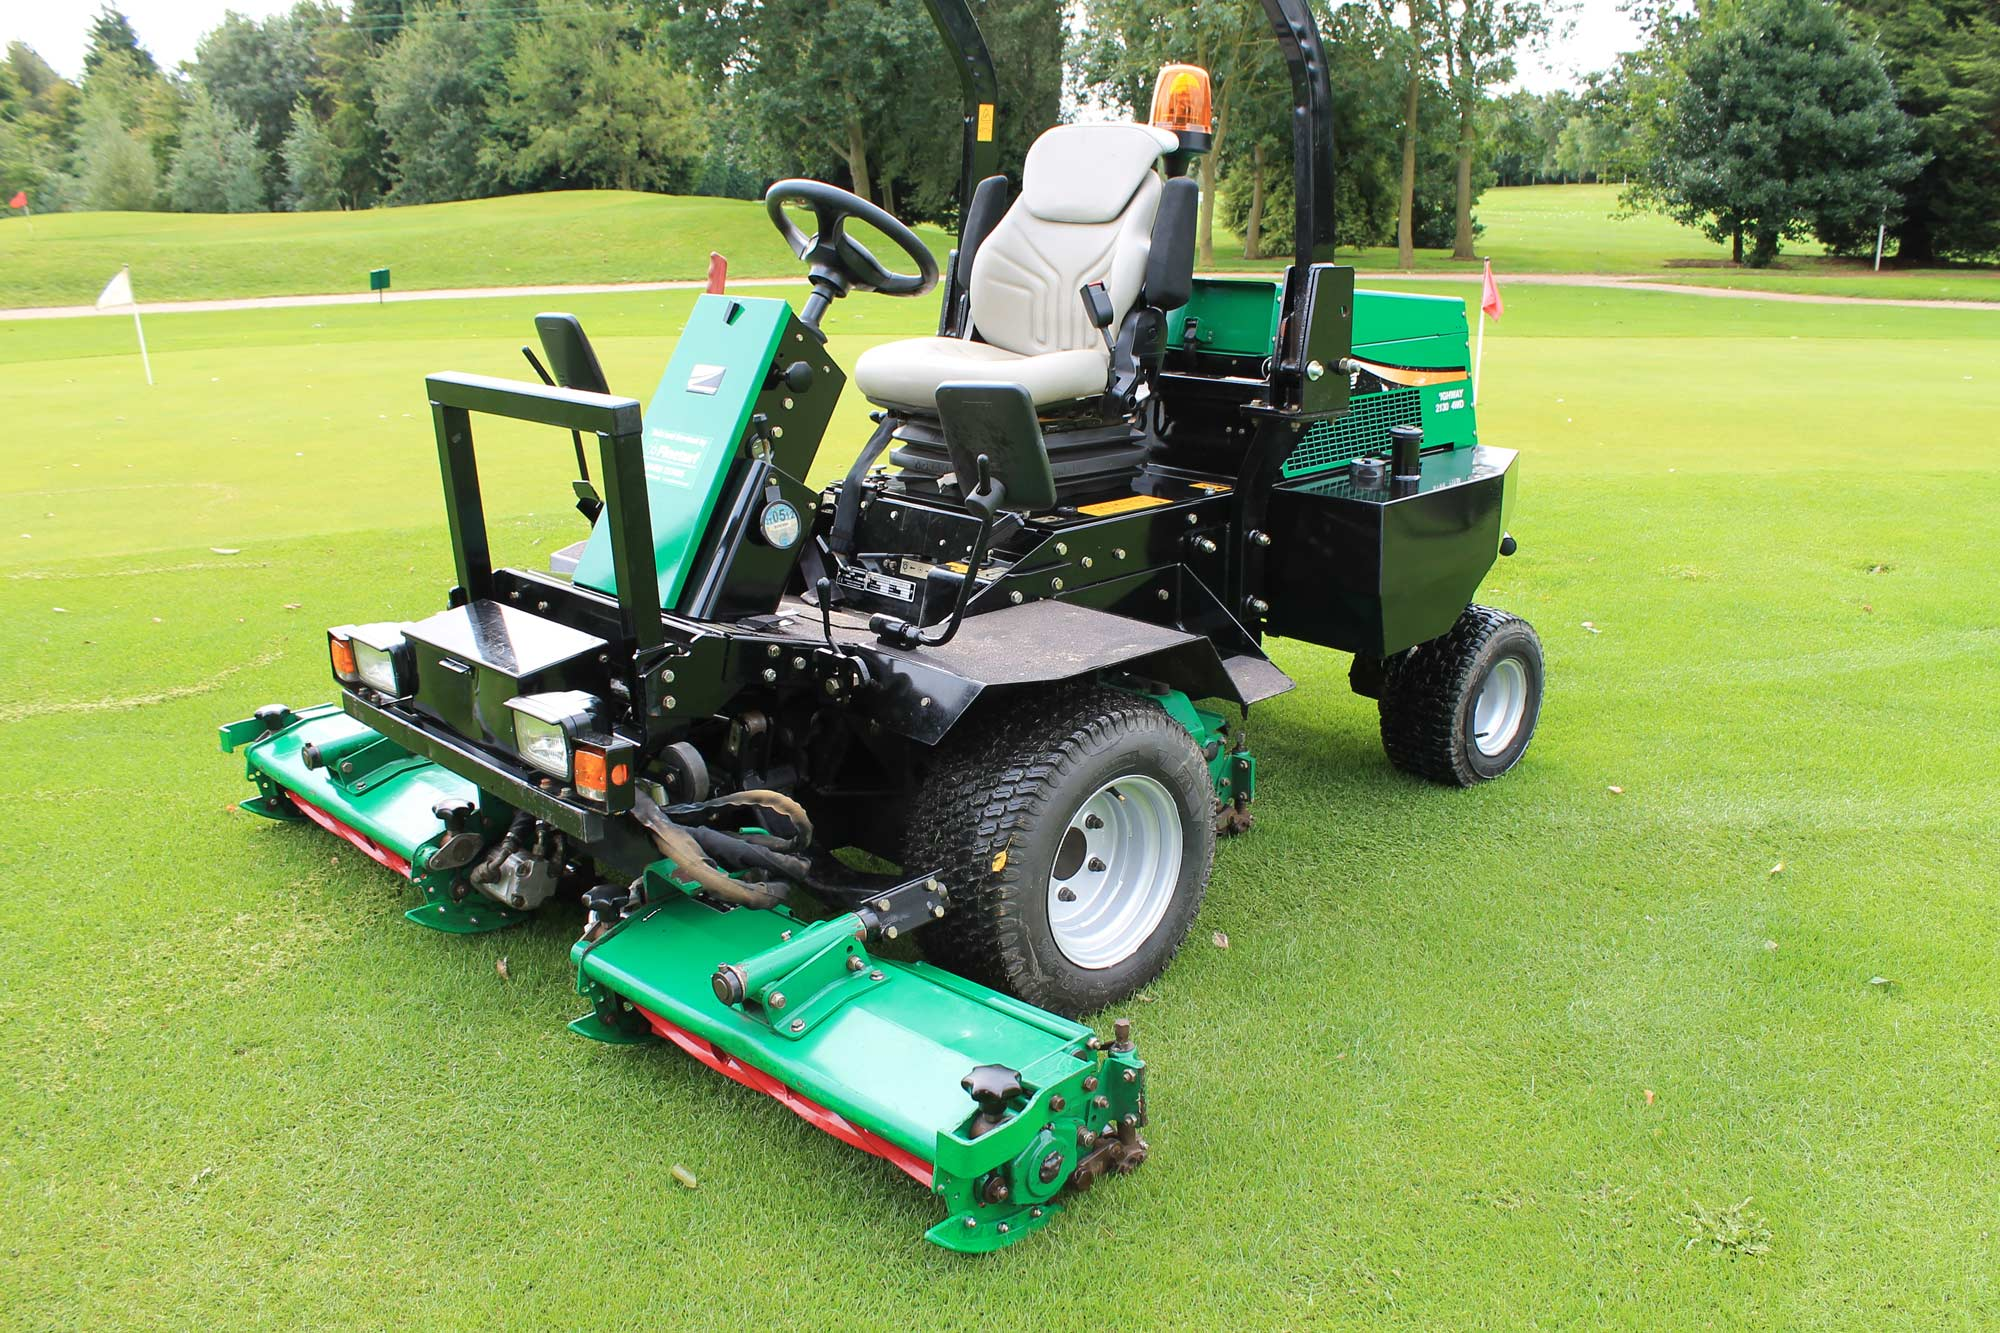 Toro Mowers For Sale >> Ransomes Highway 2130 Cylinder Mower for Sale | Fineturf